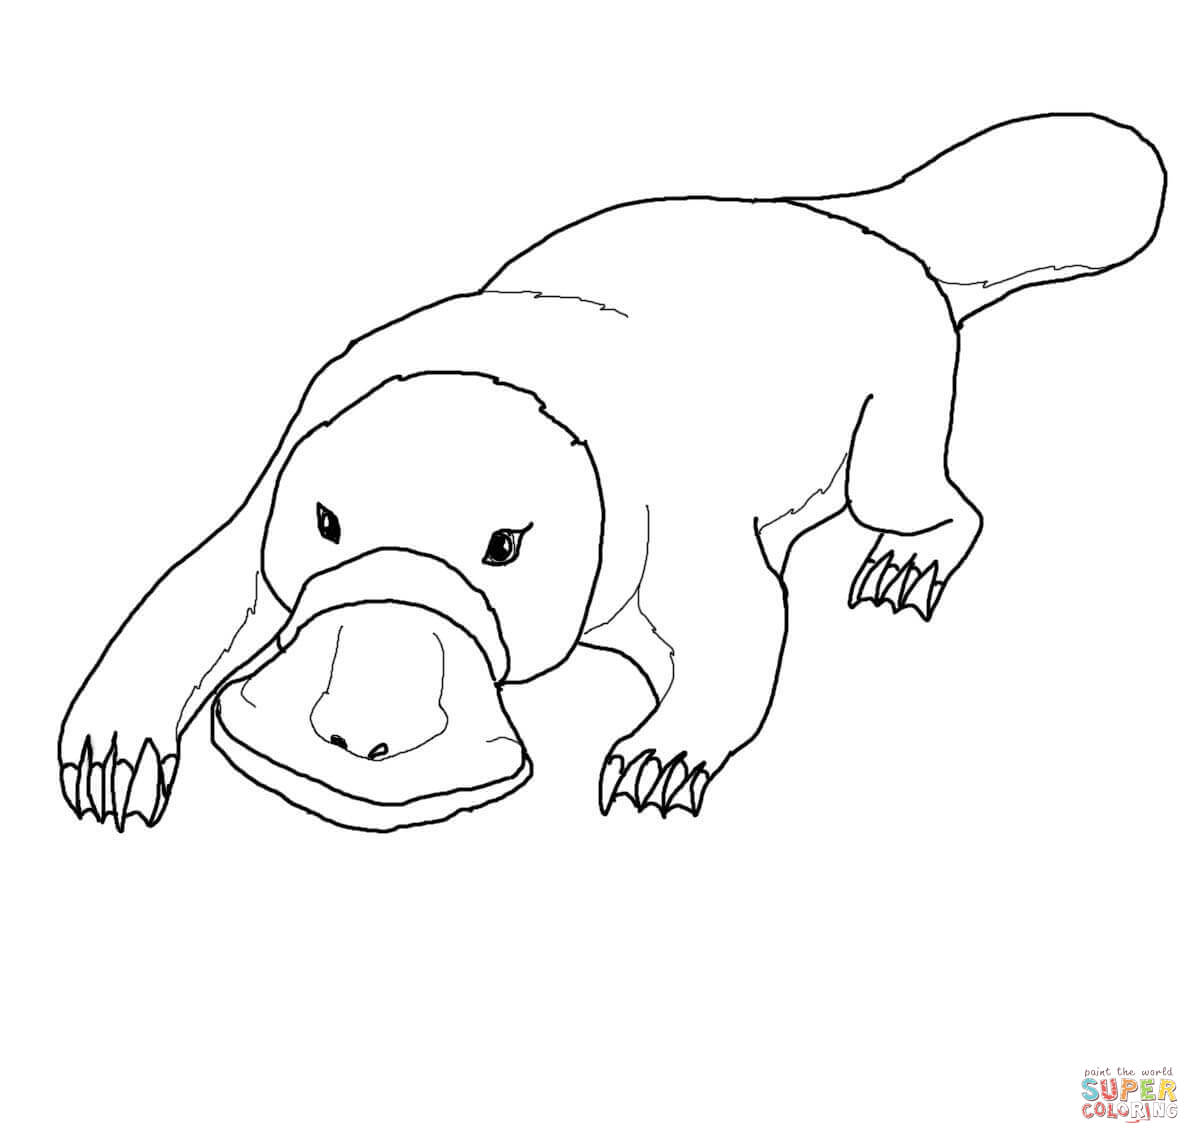 platypus pictures to print platypus coloring page free printable coloring pages platypus pictures to print